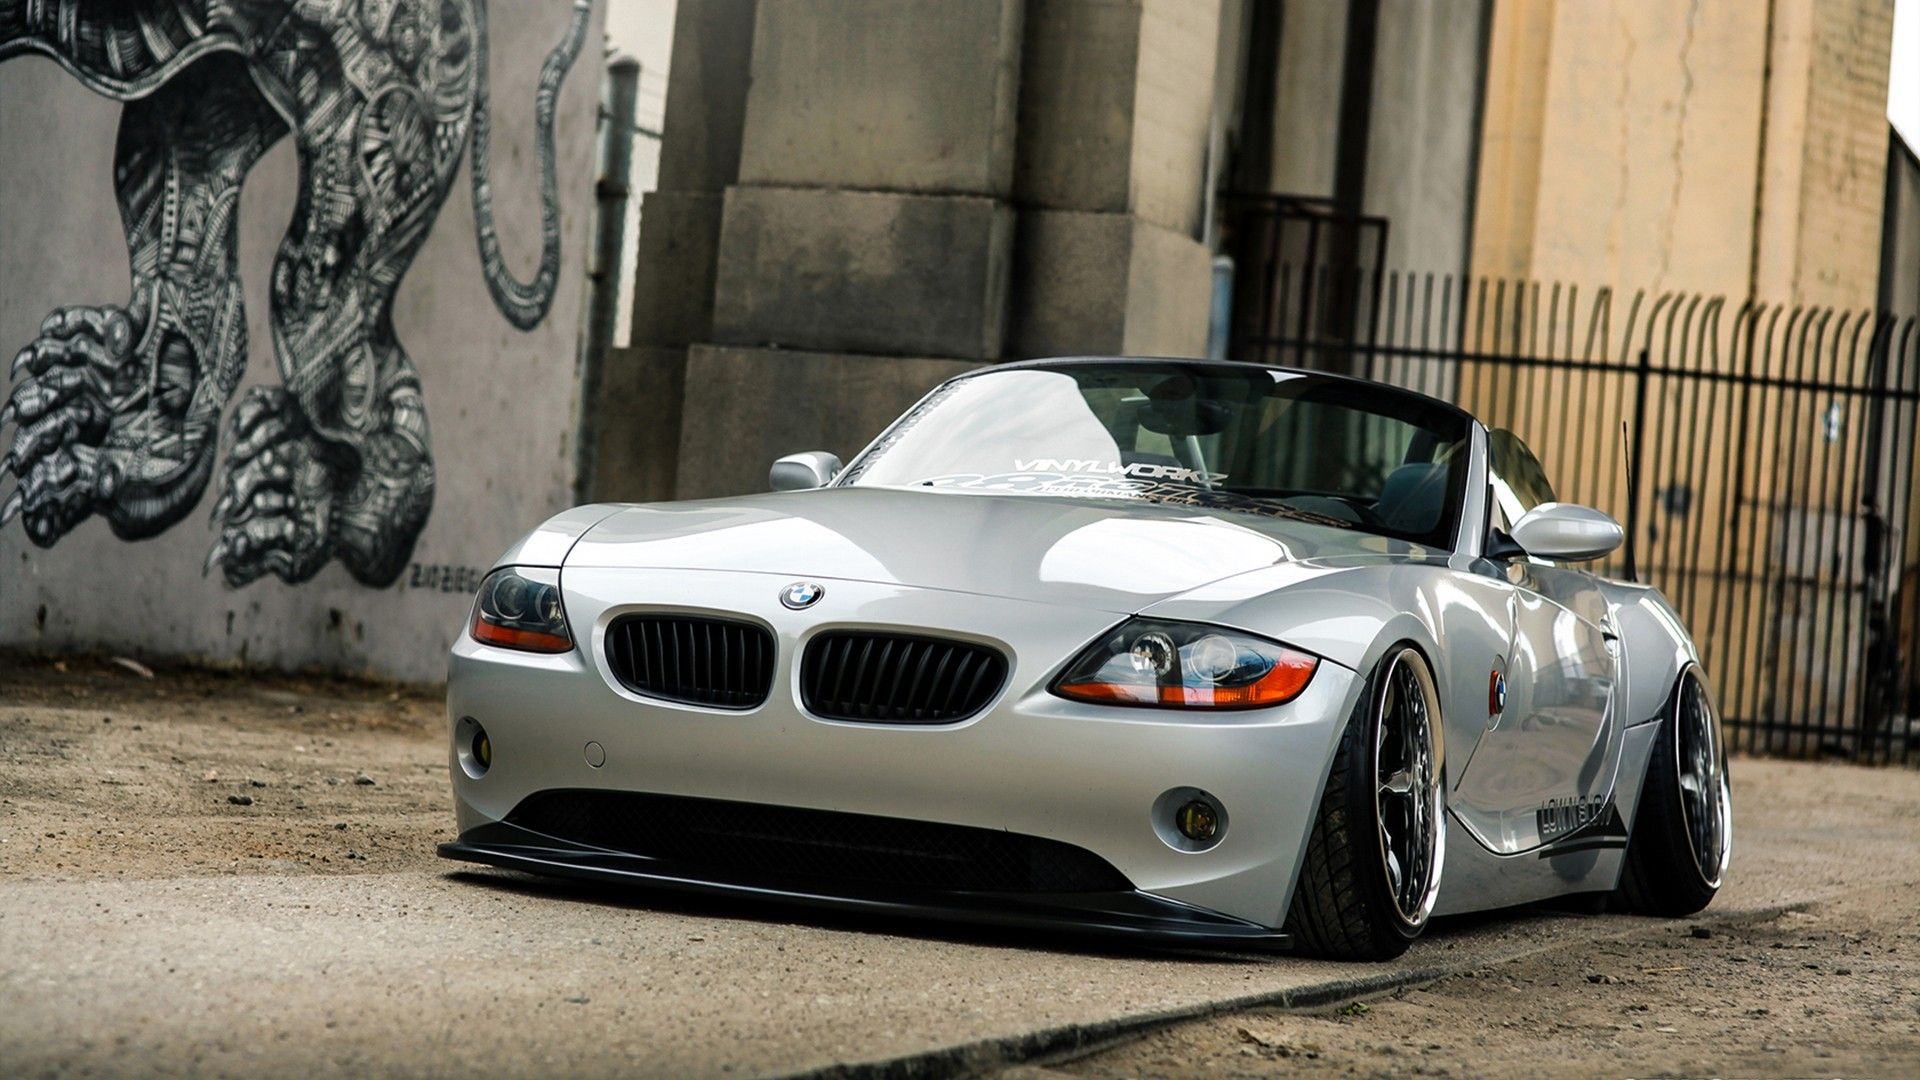 Cars Bmw Z4 Slammed Bmw Z4 Coupe Cars And Such Bmw Z4 Bmw Bmw E9